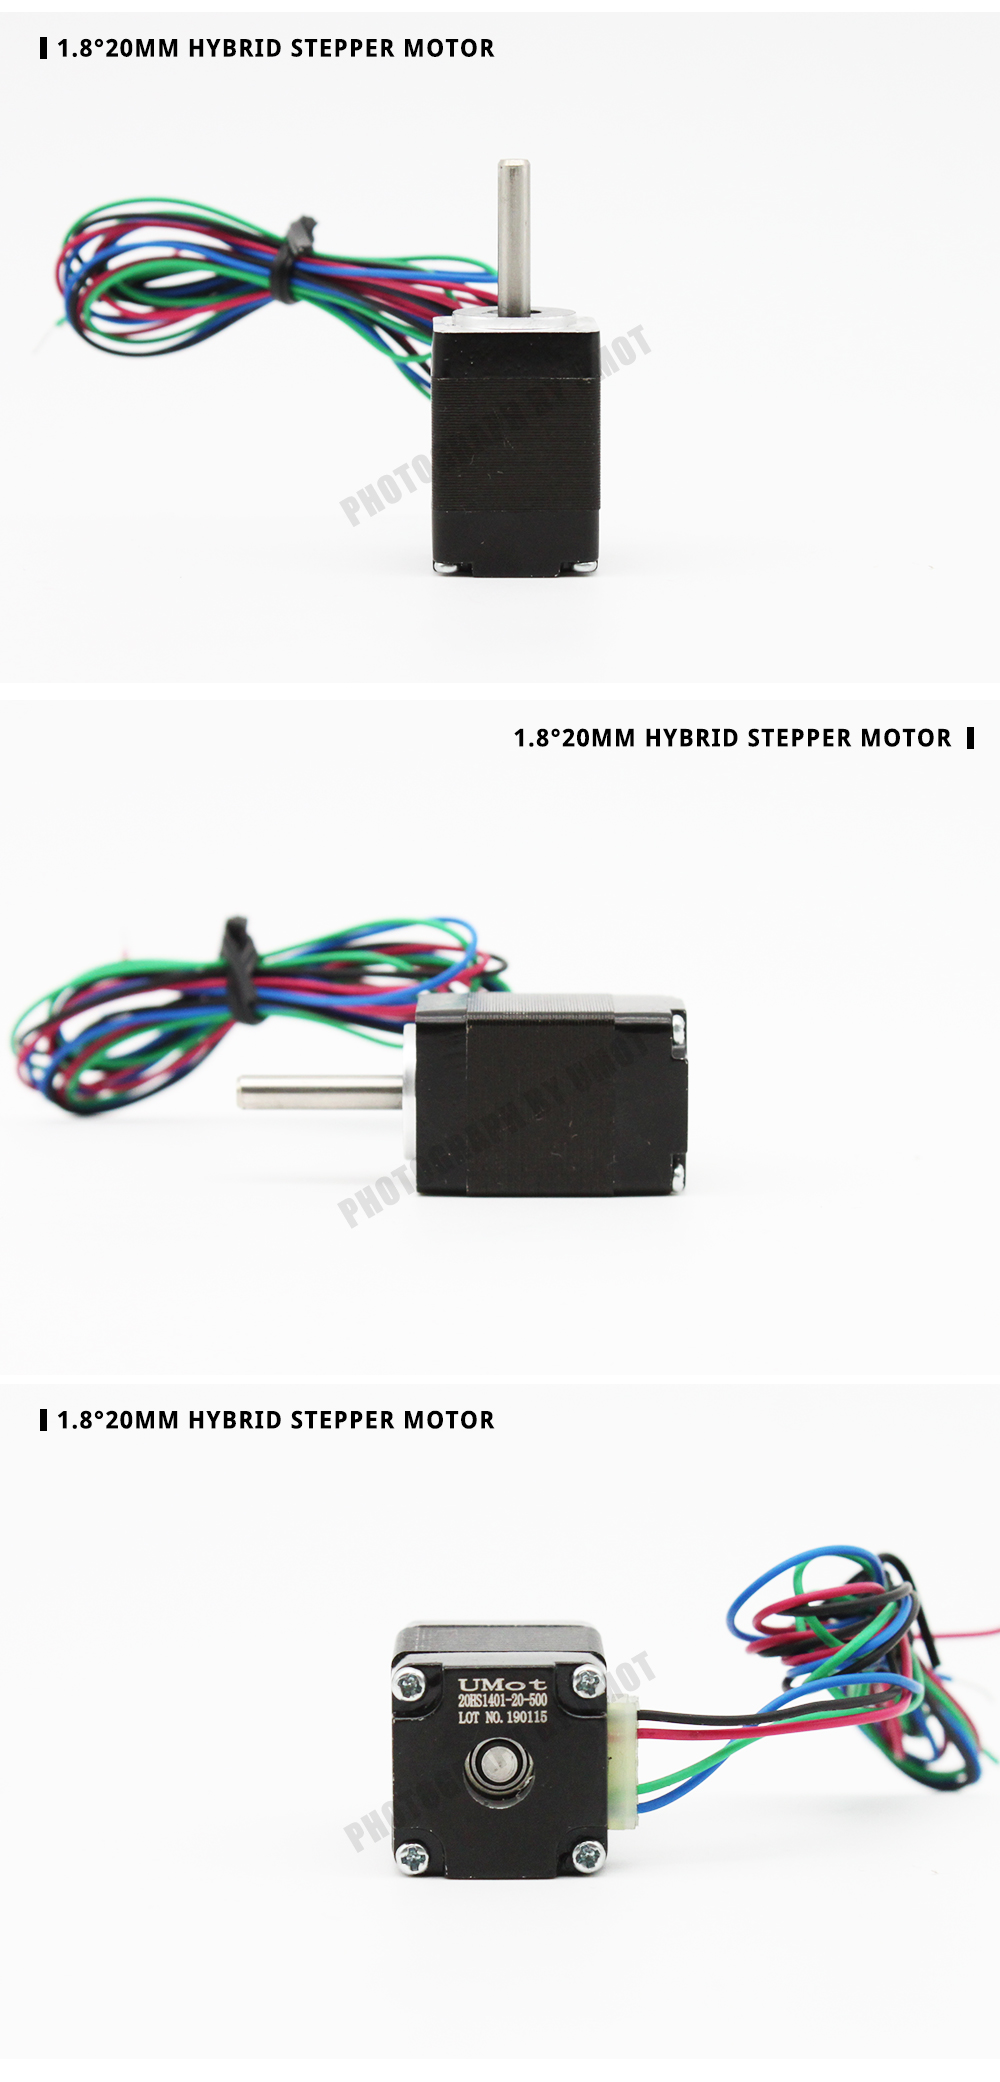 1.8°20mm-stepper-motor_06